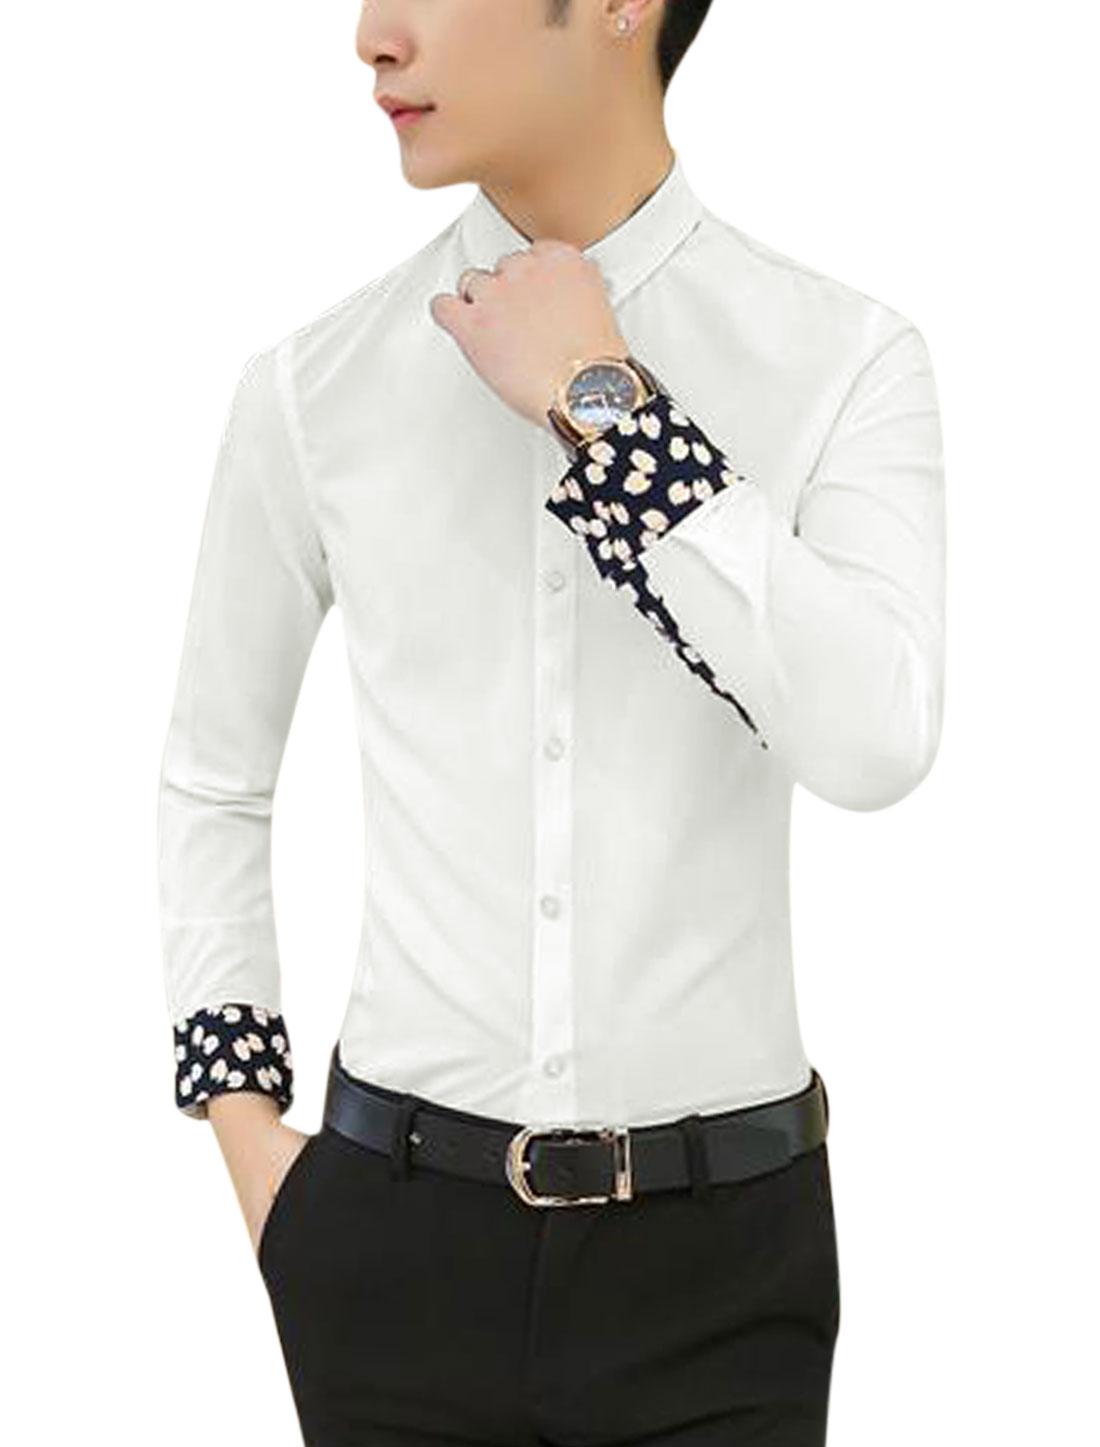 Men Long Sleeve Point Collar Button Down Leisure Shirt White S